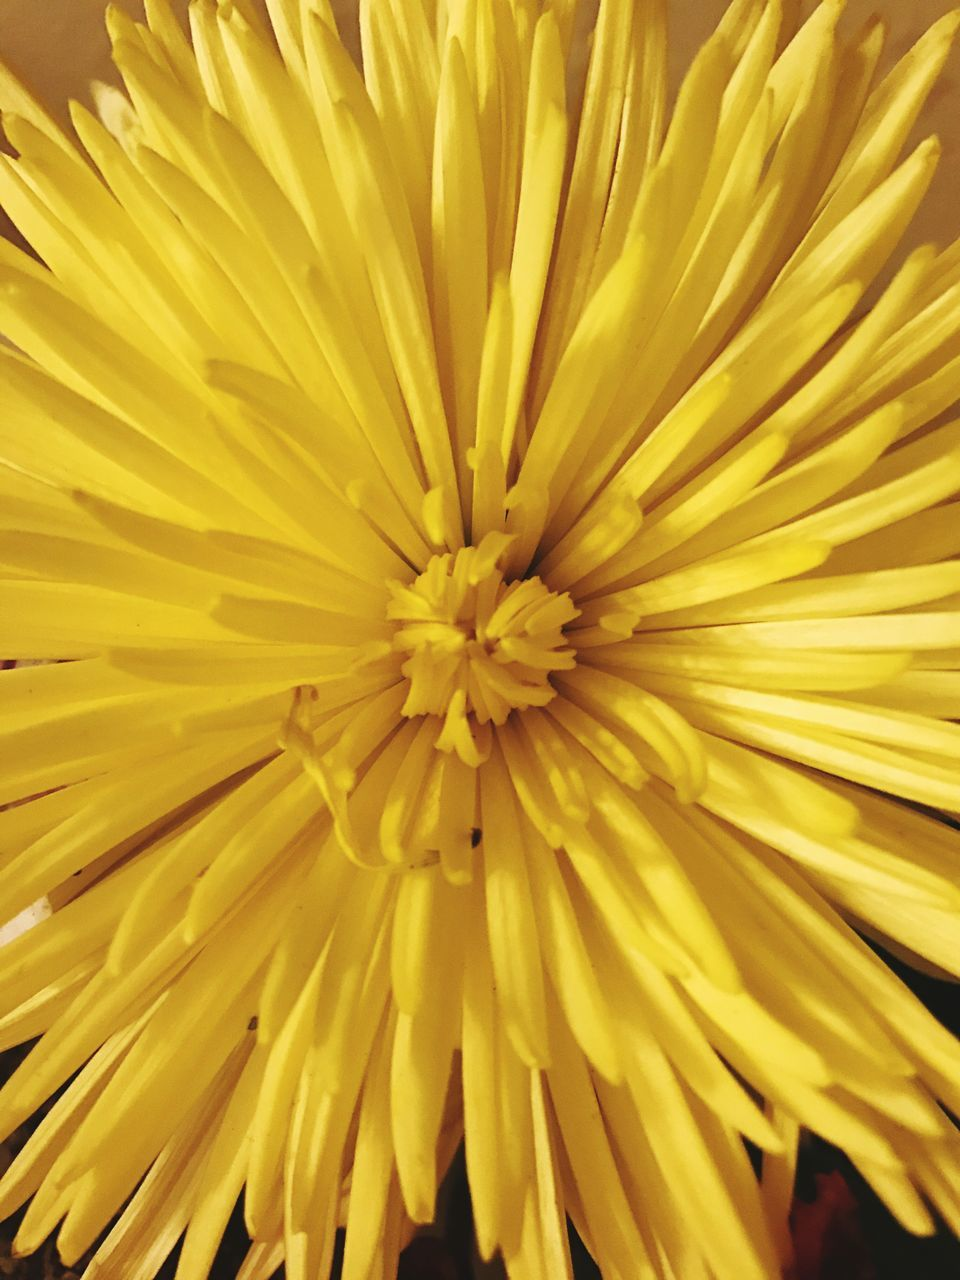 flower, yellow, petal, fragility, full frame, freshness, flower head, beauty in nature, close-up, nature, backgrounds, growth, no people, plant, blooming, day, outdoors